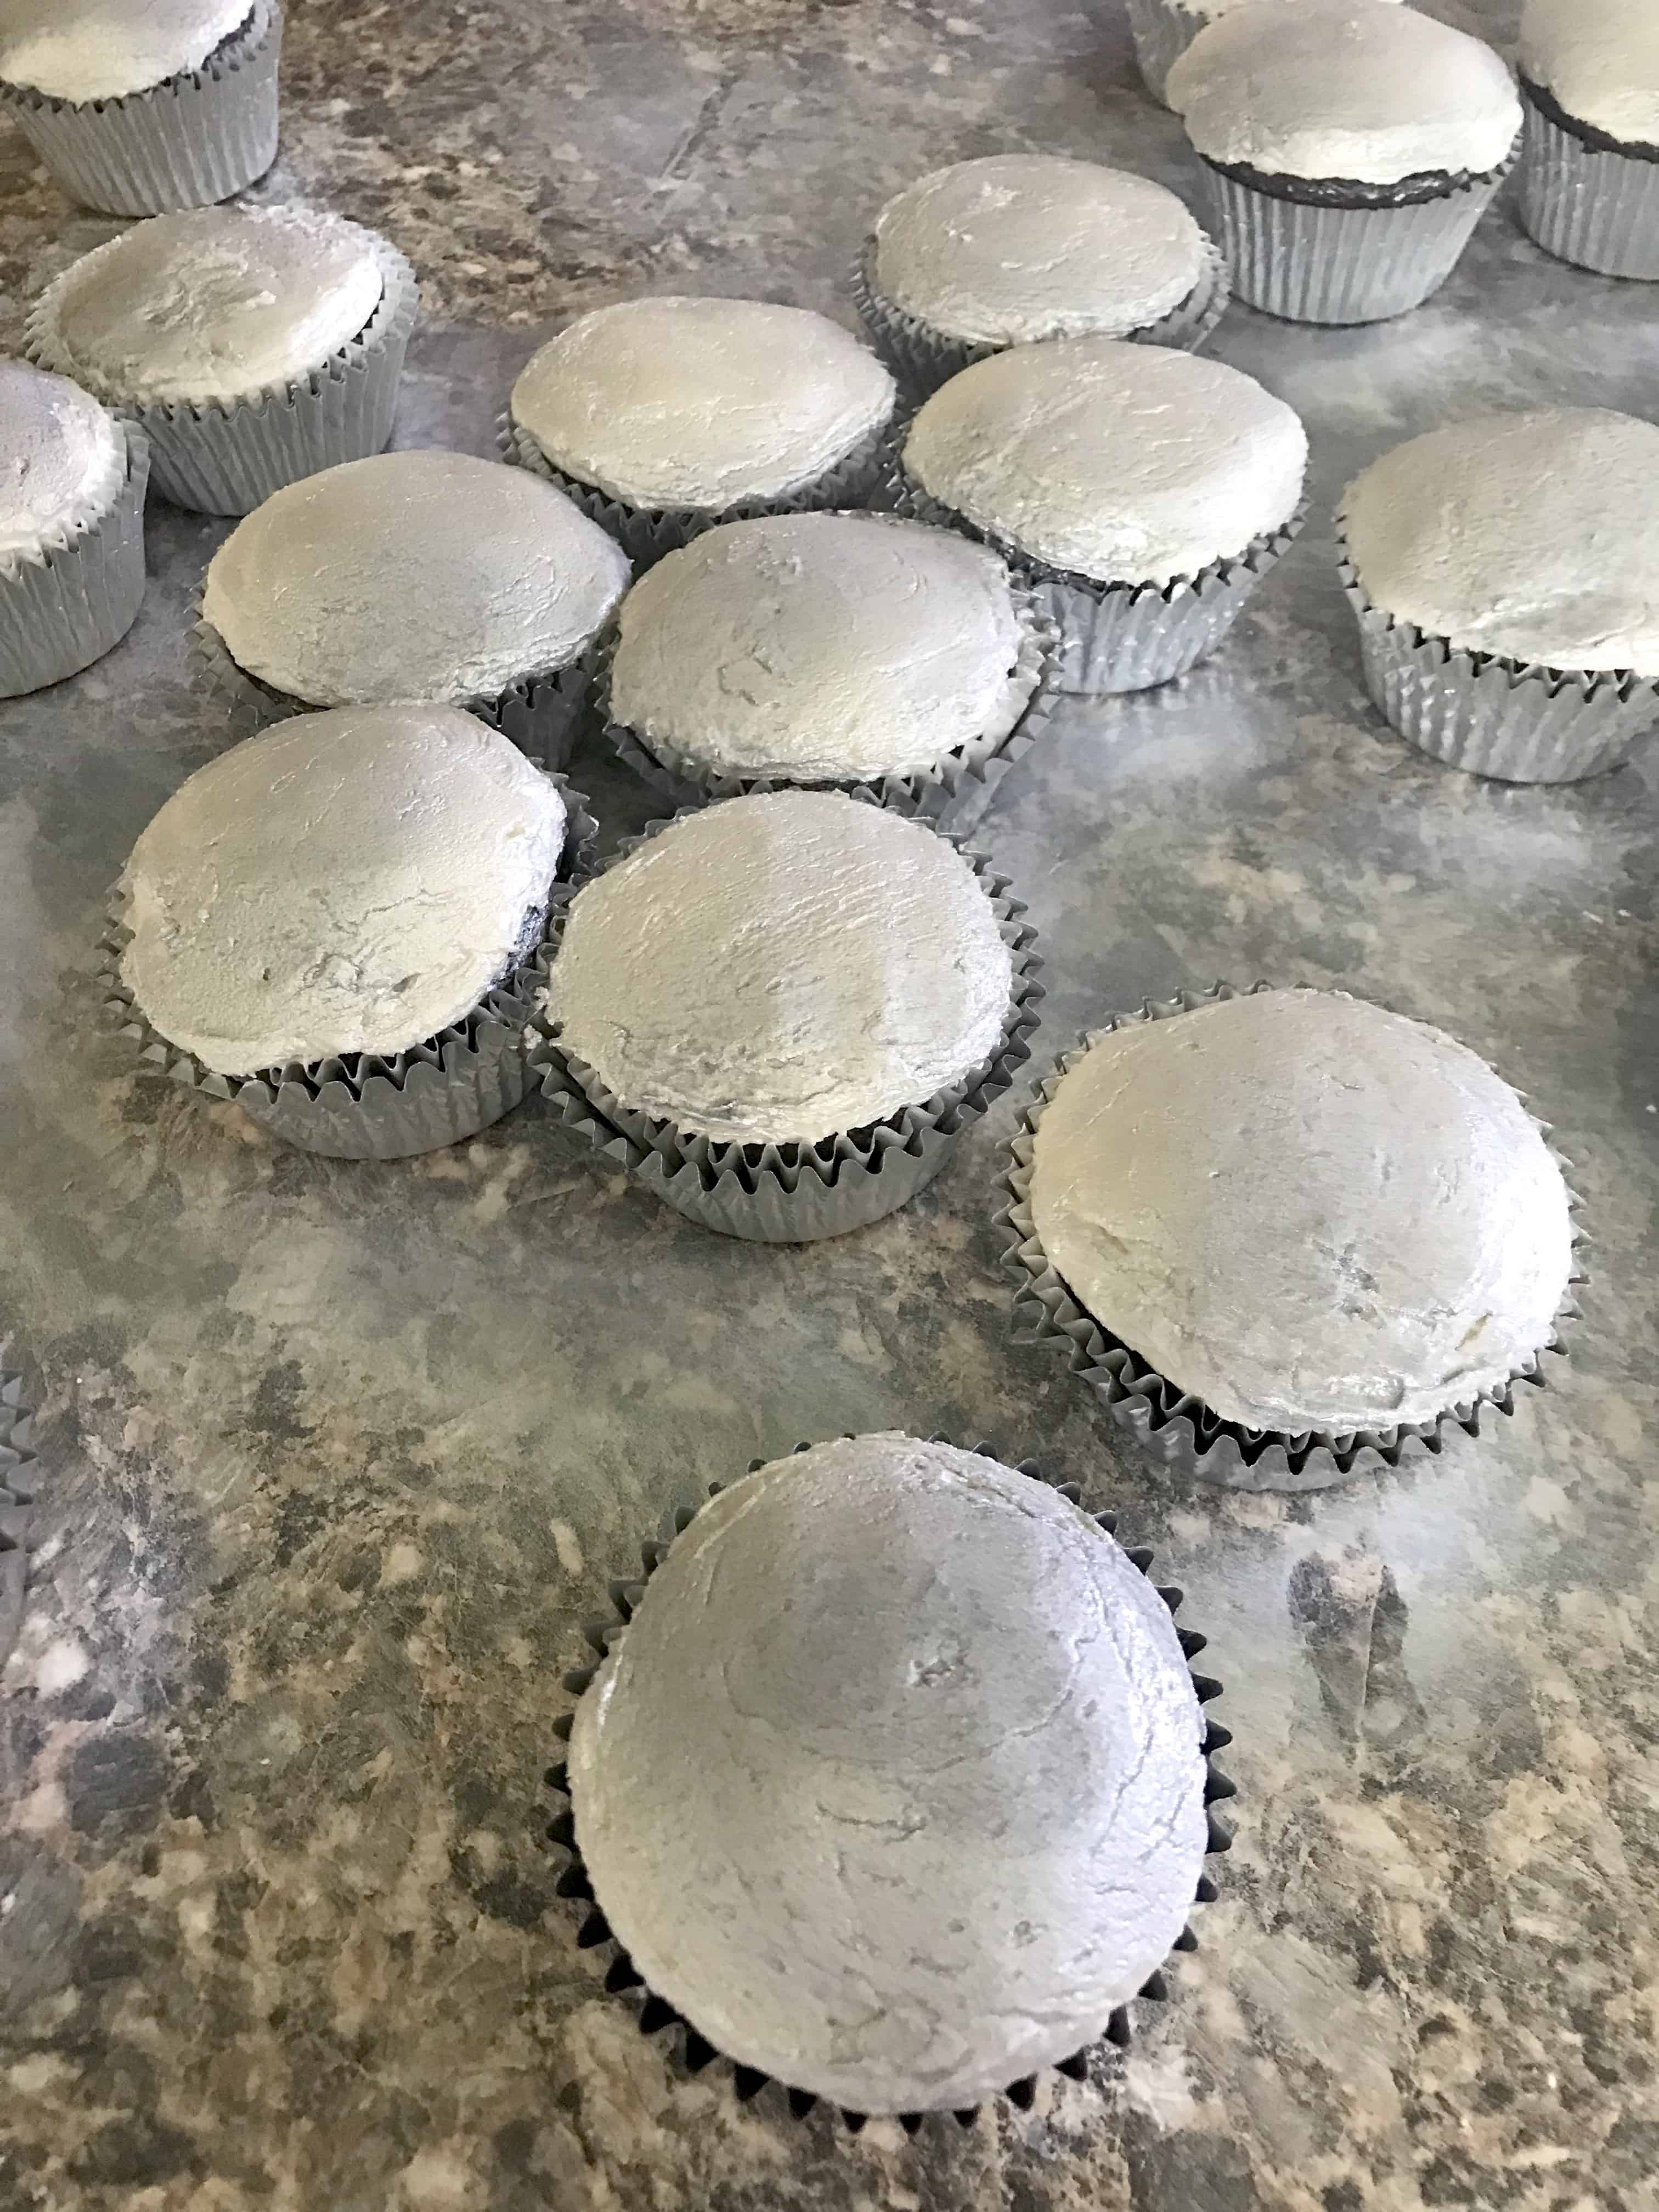 Do you have a Fortnite Fan? These easy Fortnite cupcakes with a homemade buttercream frosting recipe. Check out my tip to get the icing nice and flat and get the perfect silver color! There is even a tip to make more food like Rice Krispies med kits. Spray the cupcakes.